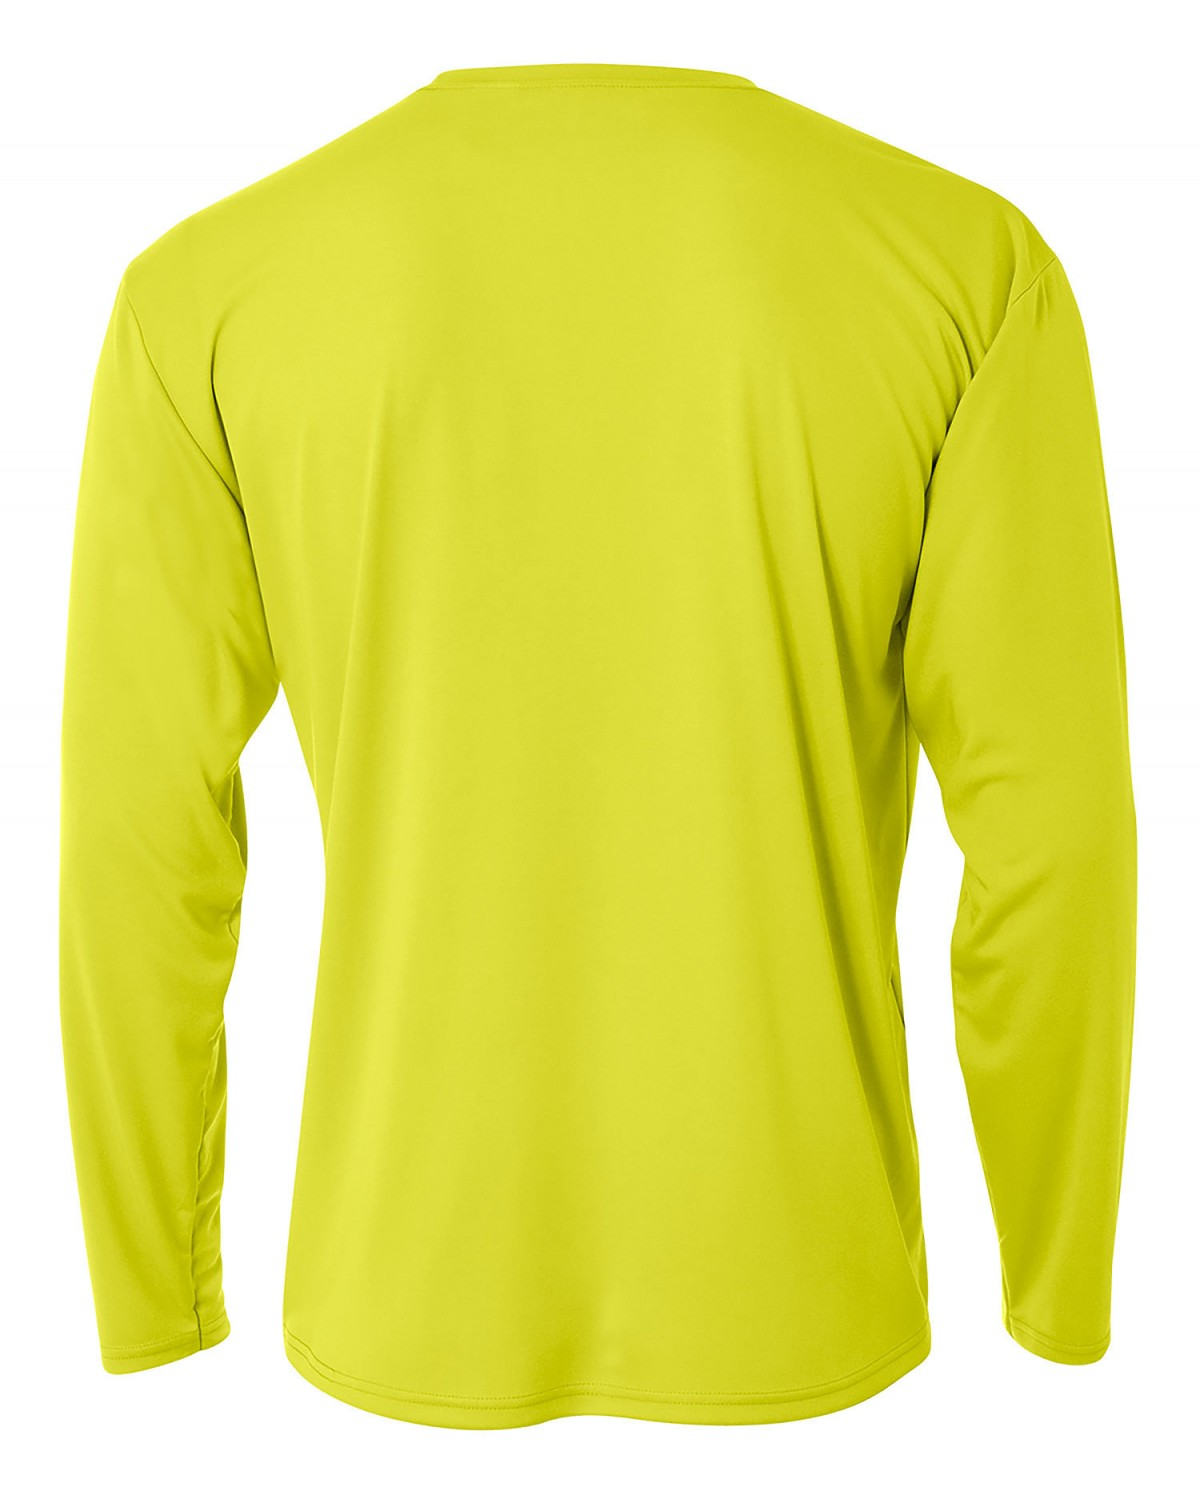 A4N3165 A4 SAFETY YELLOW